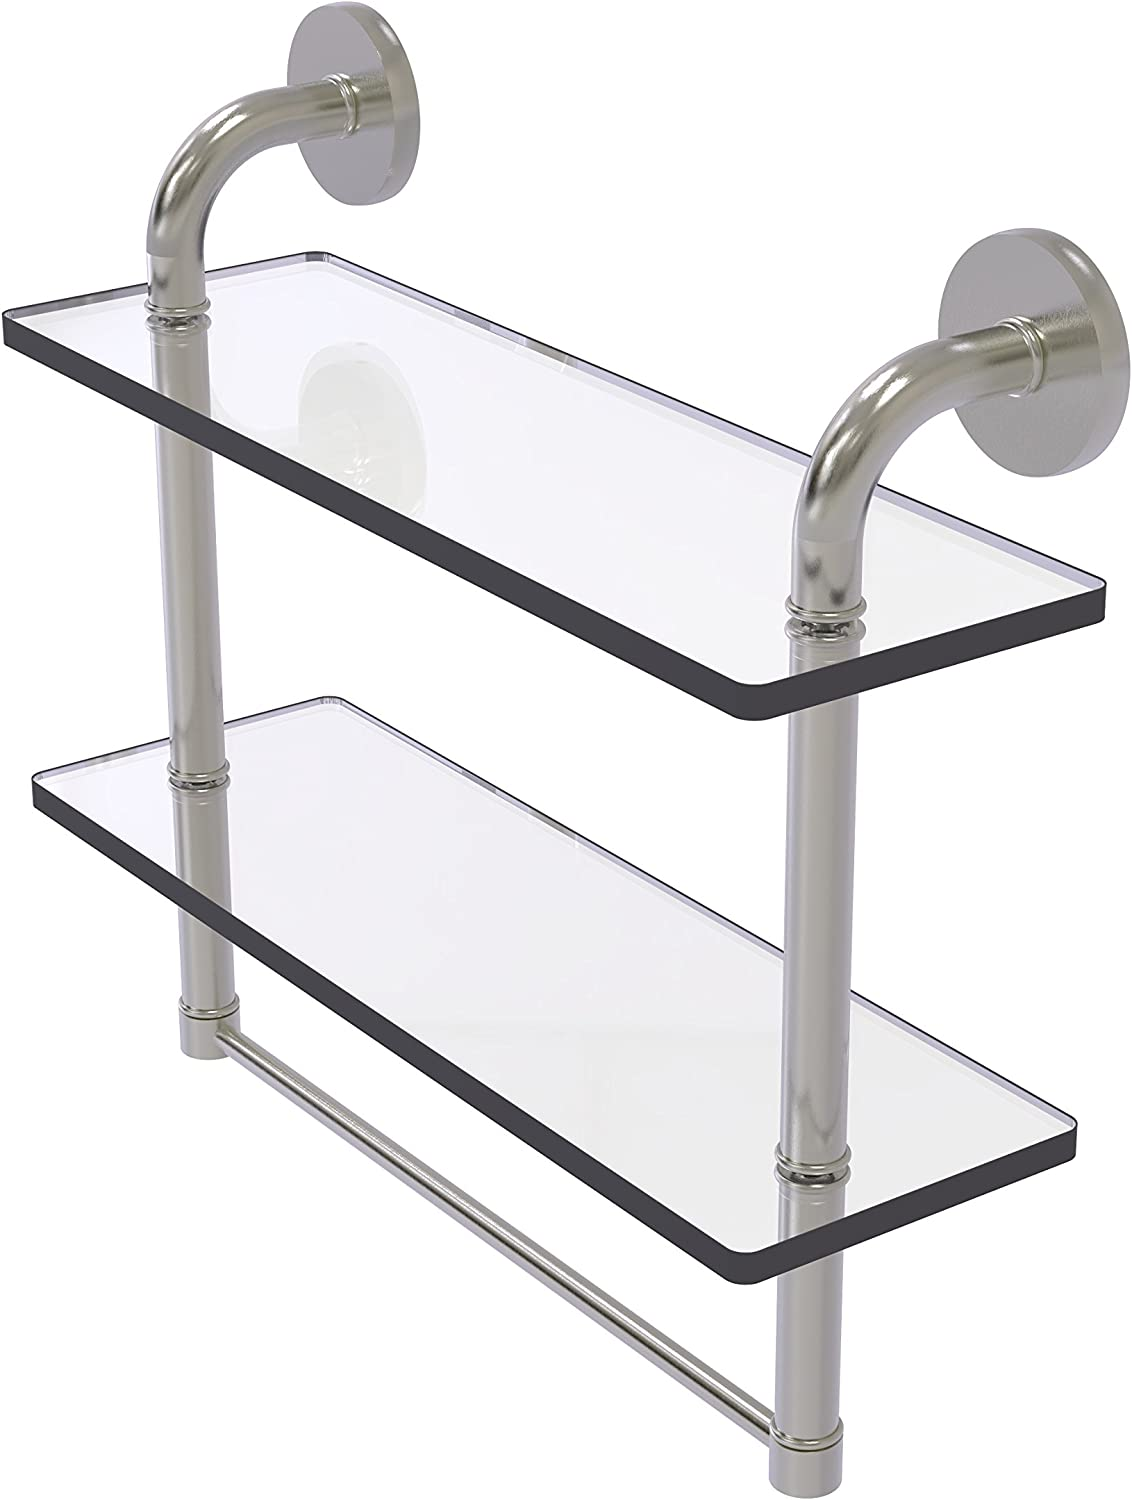 Allied Brass Remi Collection 16 Inch Two Tiered Glass Shelf with Integrated Towel Bar, RM-2-16TB-SN